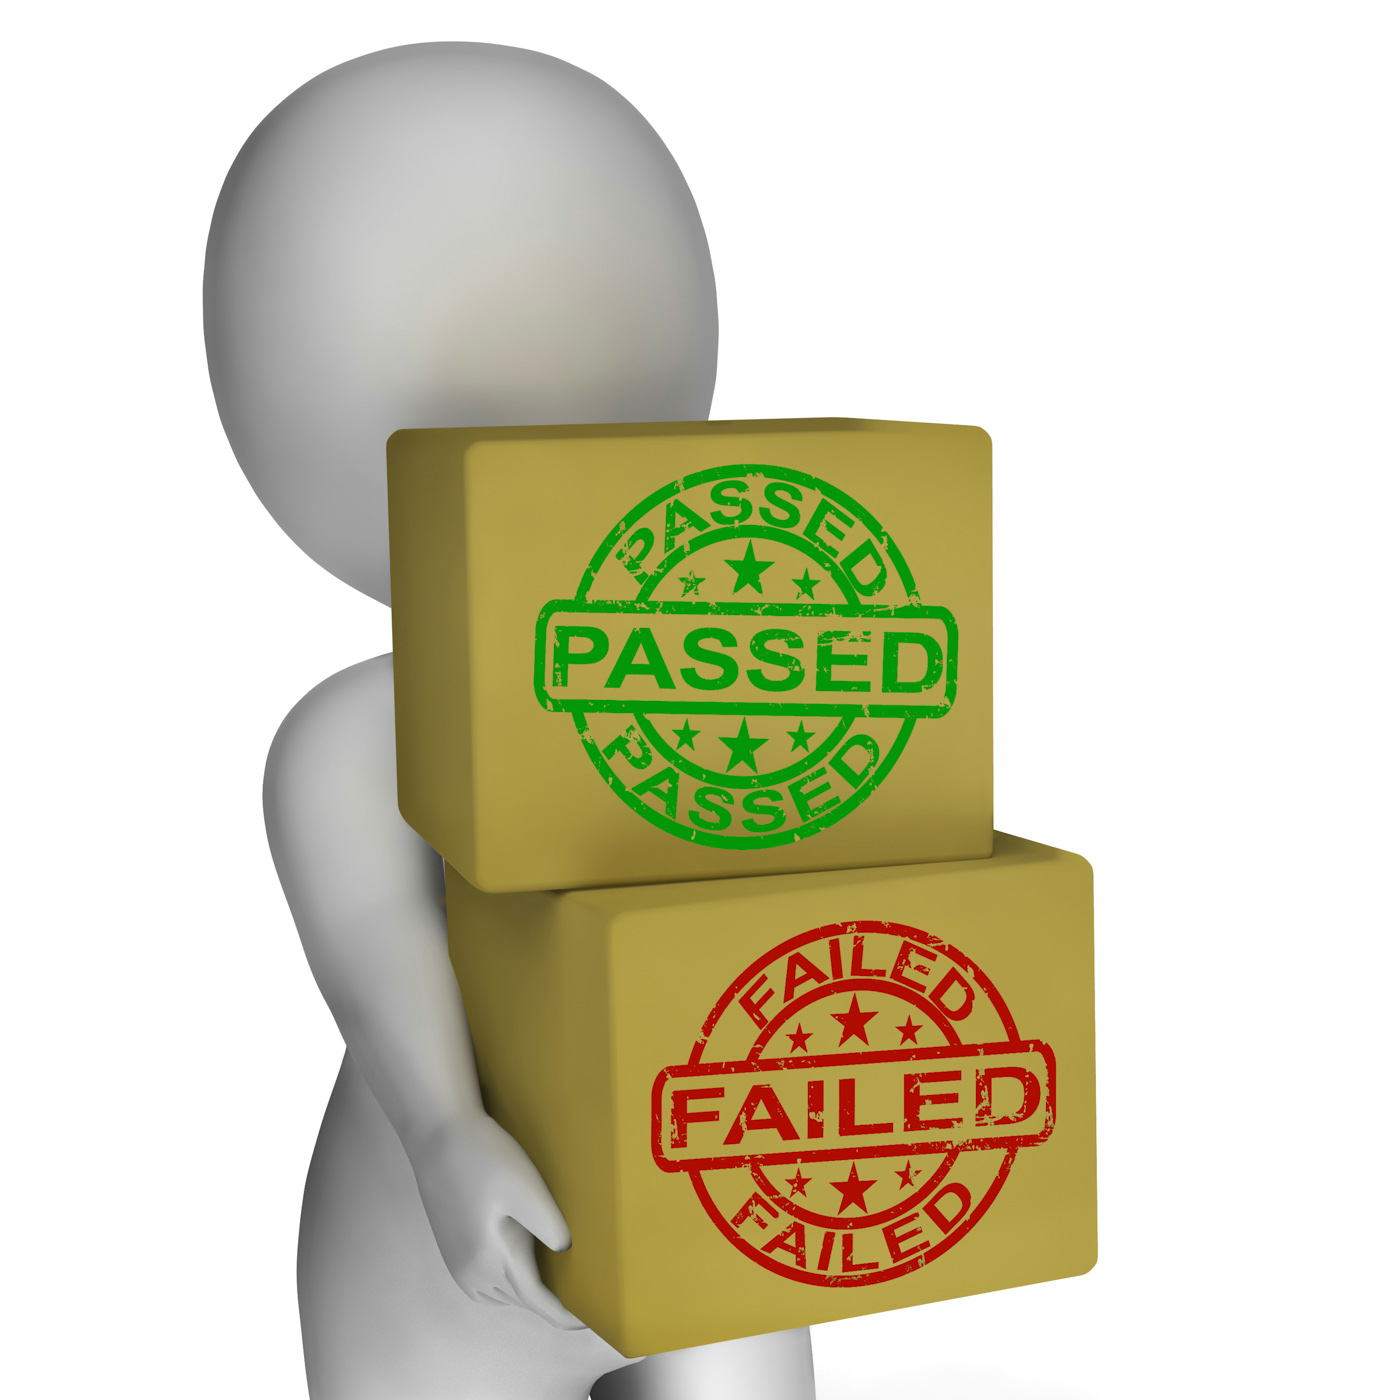 Passed and failed boxes mean product testing or validation photo